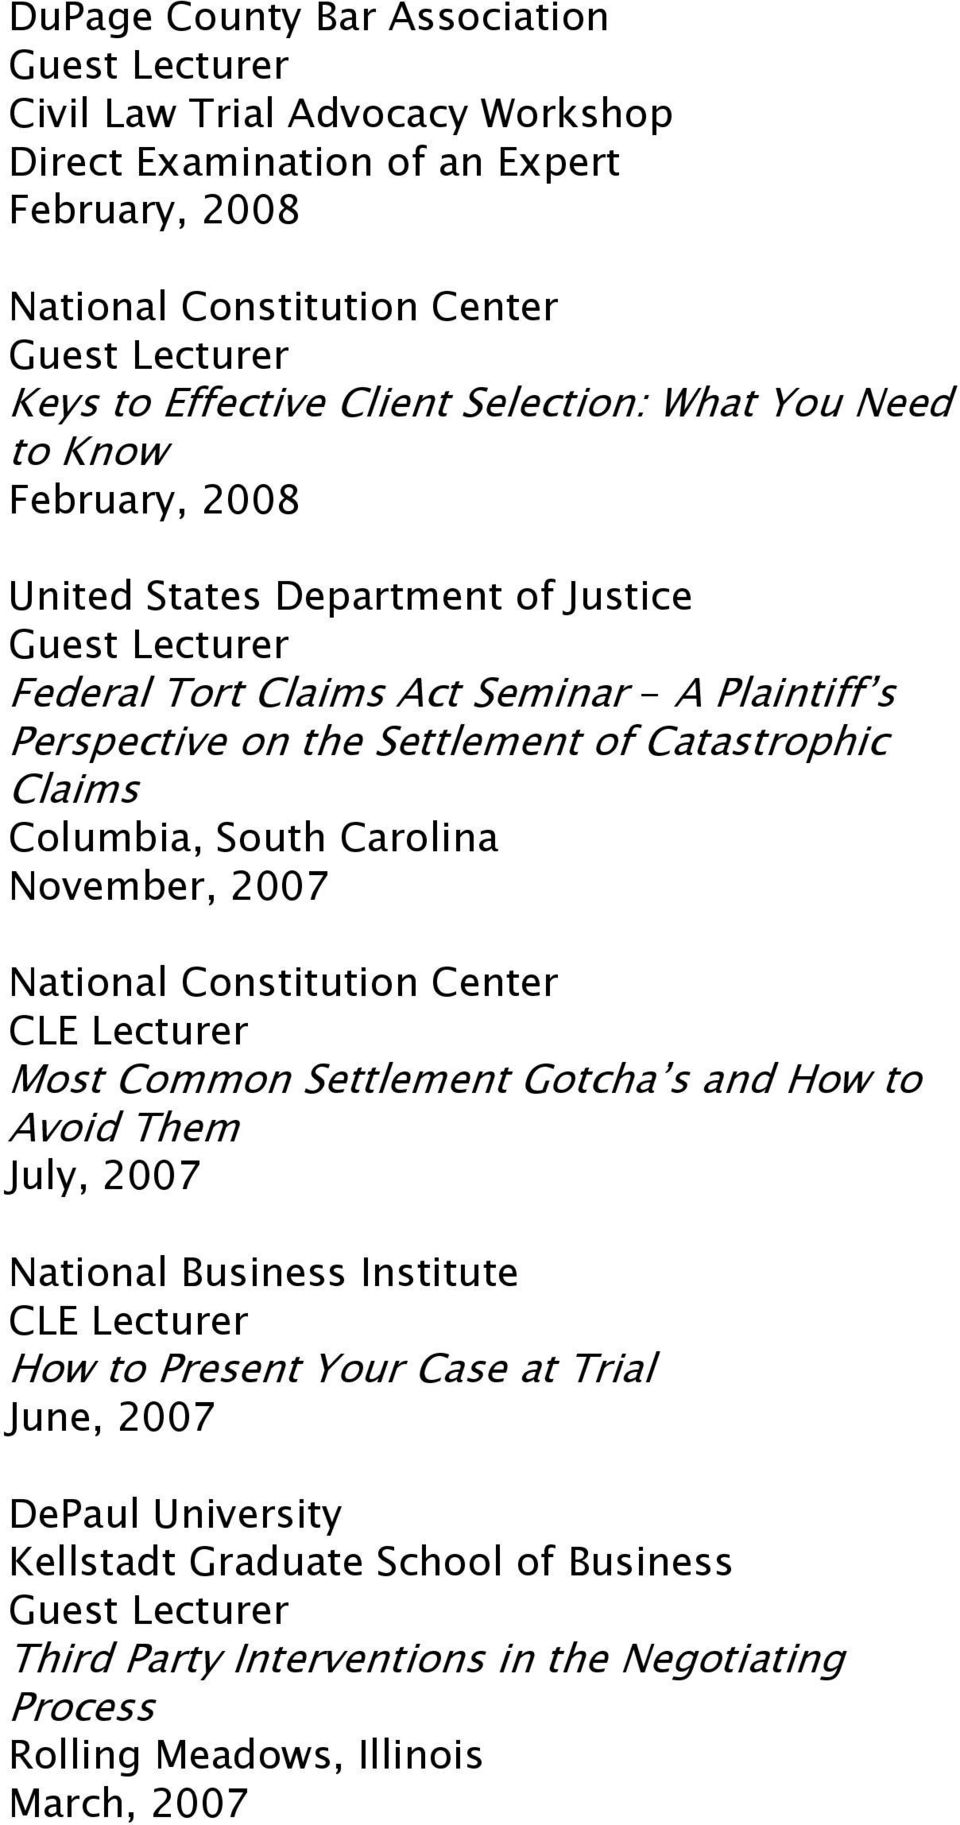 Columbia, South Carolina November, 2007 National Constitution Center Most Common Settlement Gotcha s and How to Avoid Them July, 2007 National Business Institute How to